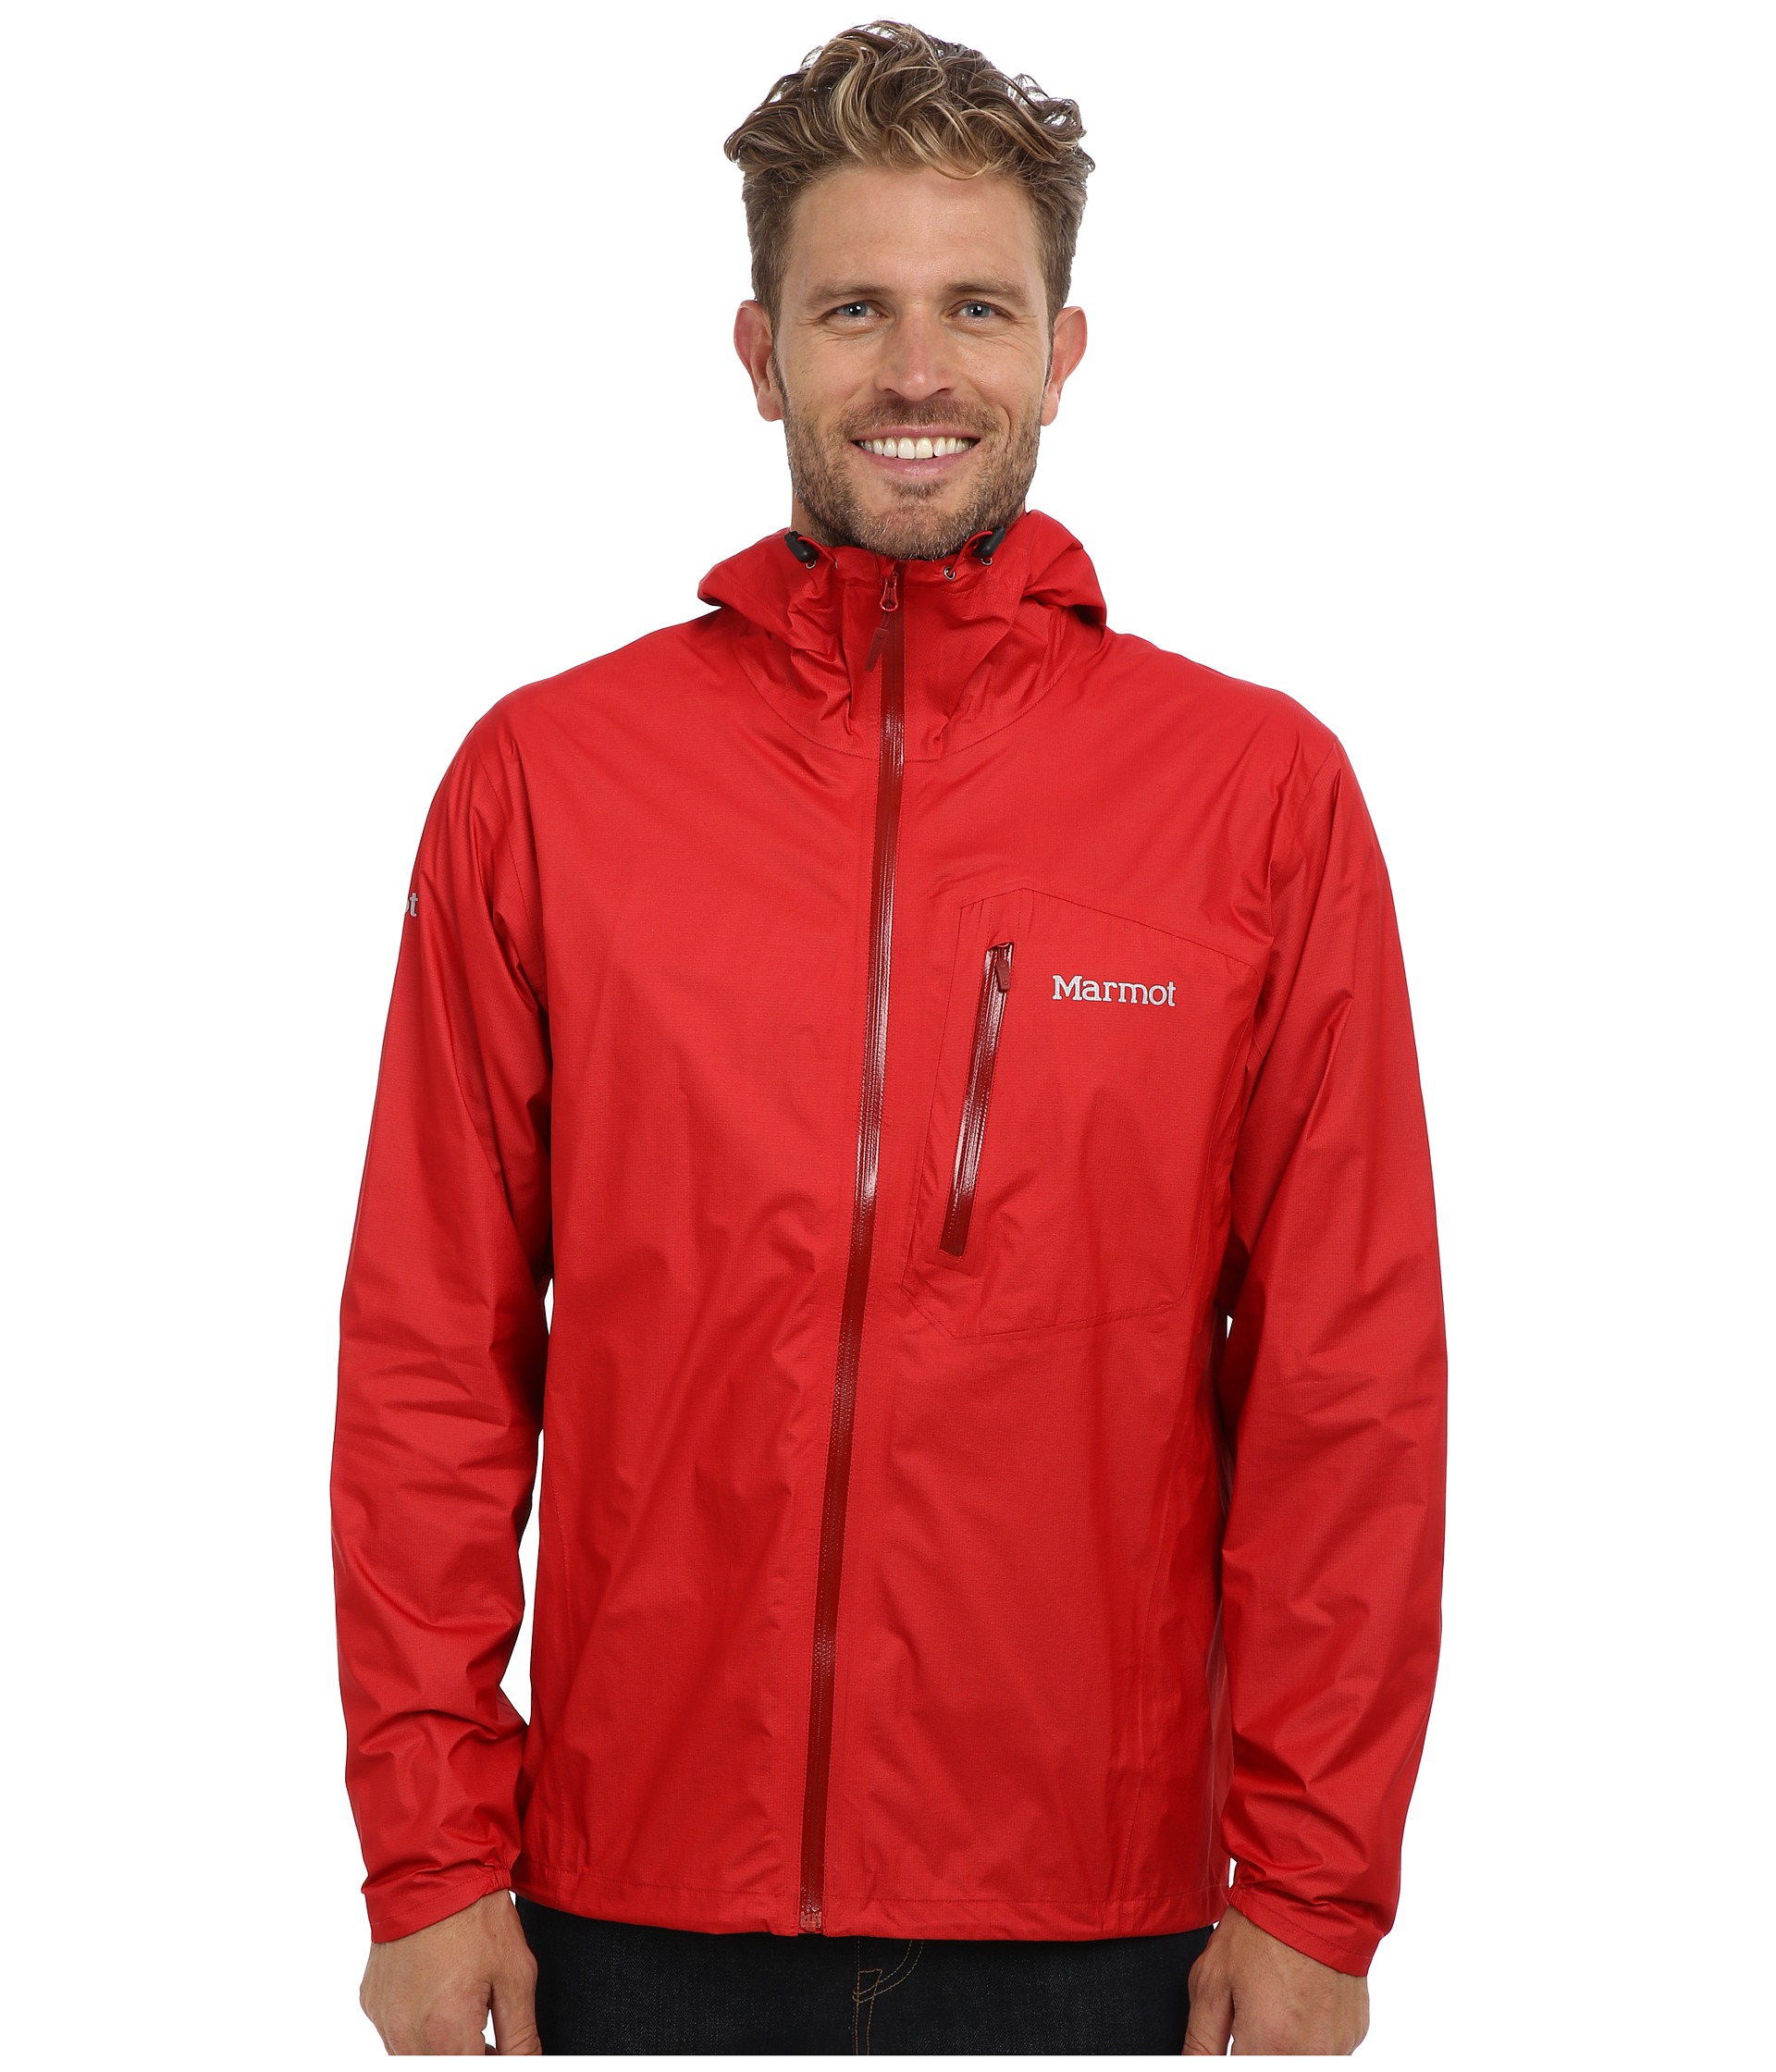 Marmot Essence Jacket In Red For Men Lyst